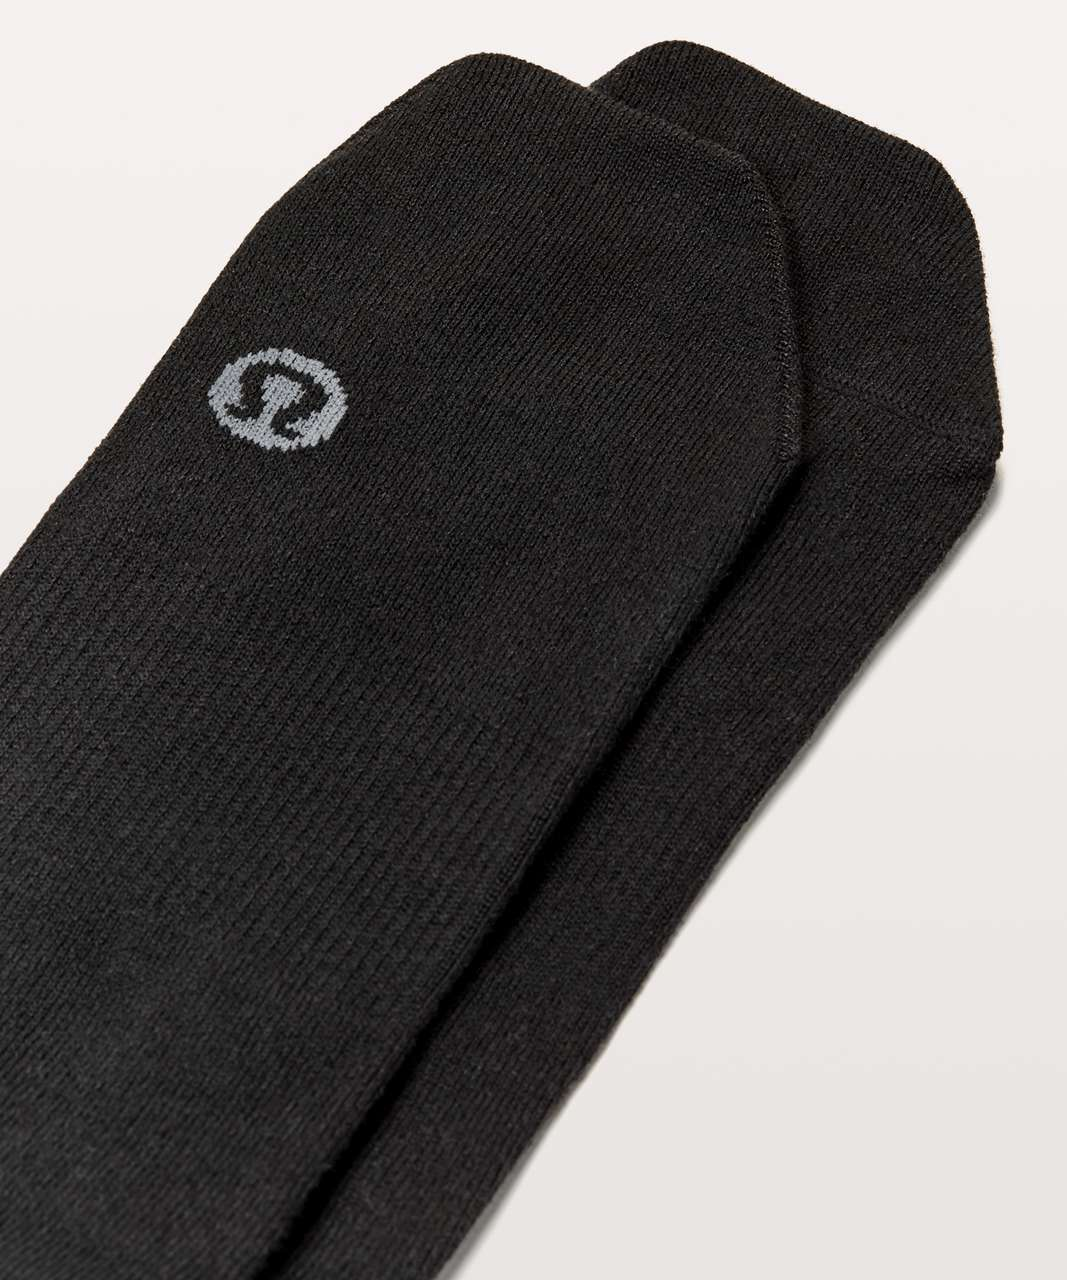 Lululemon All In A Day Sock - Black